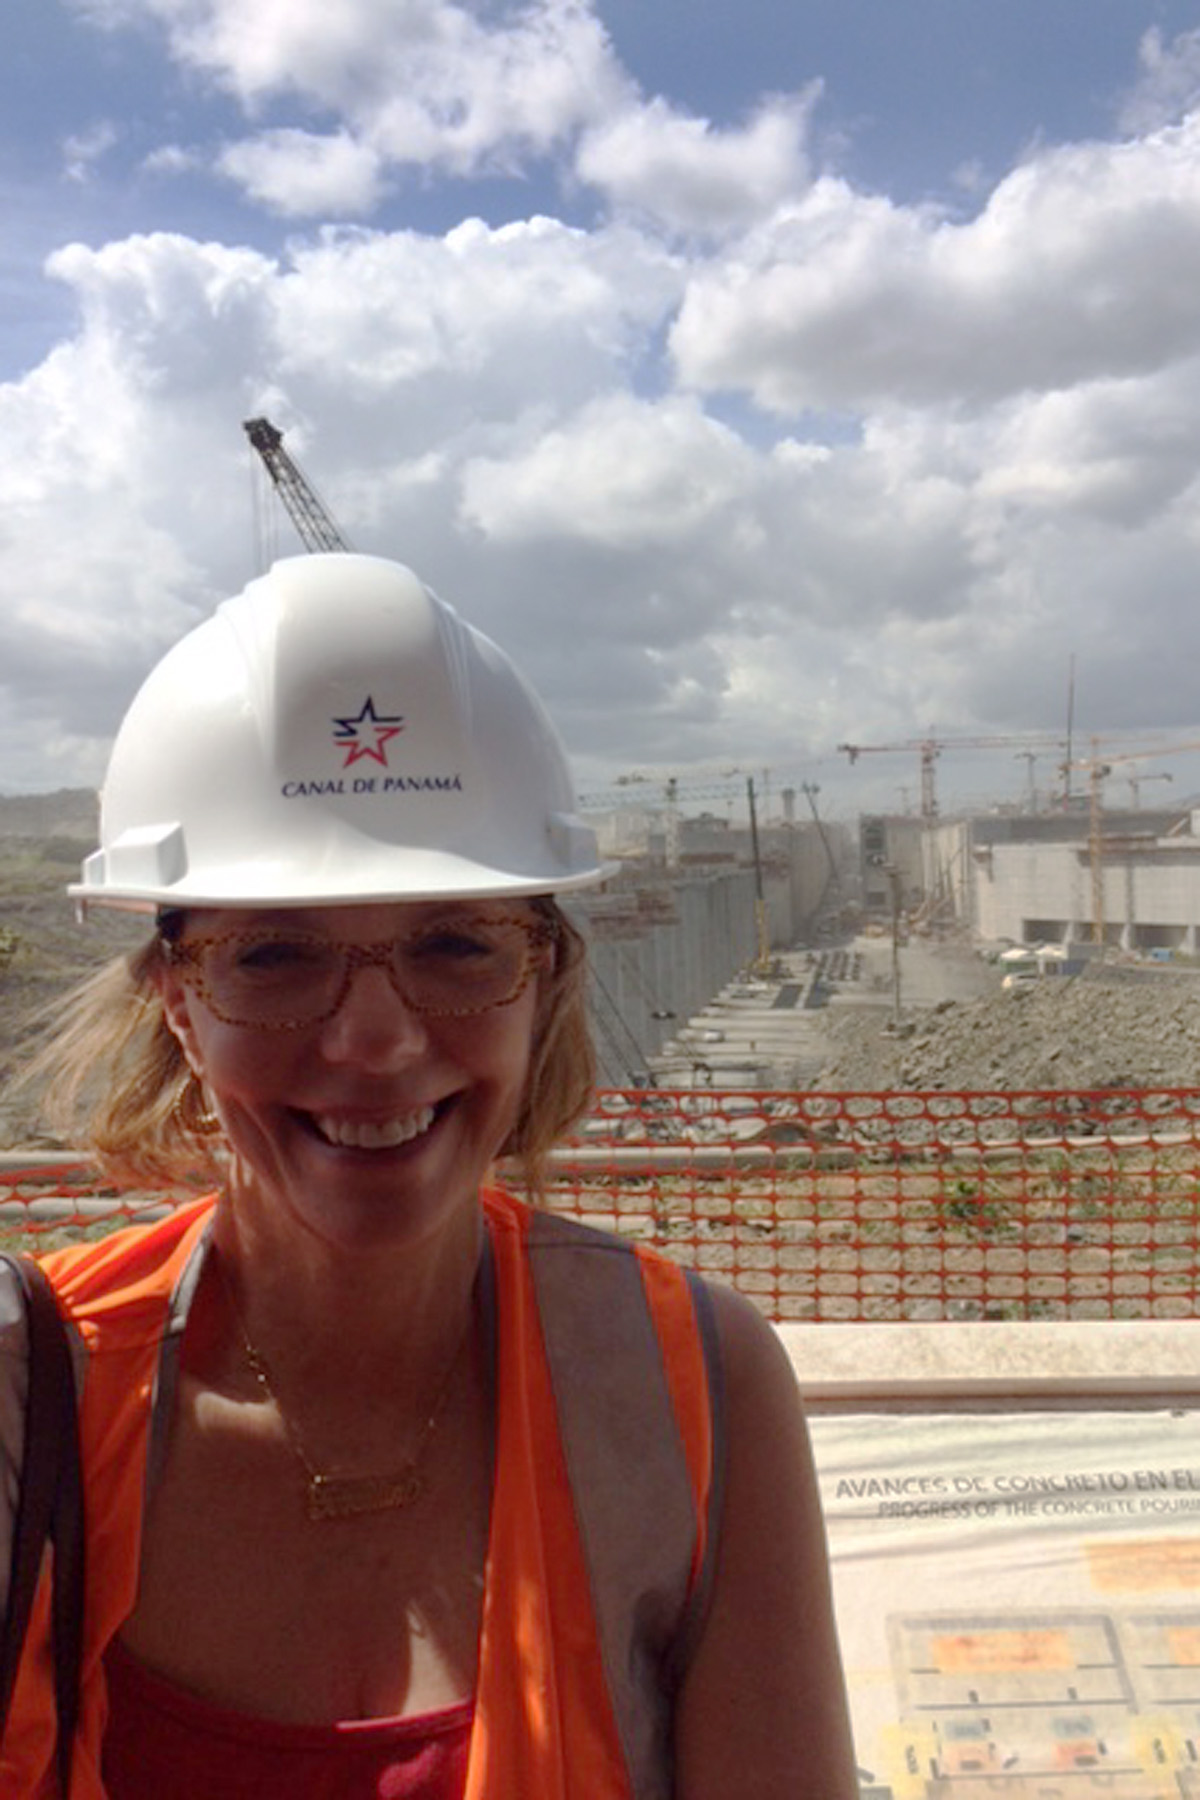 Geraldine Knatz at big locks construction site Panama